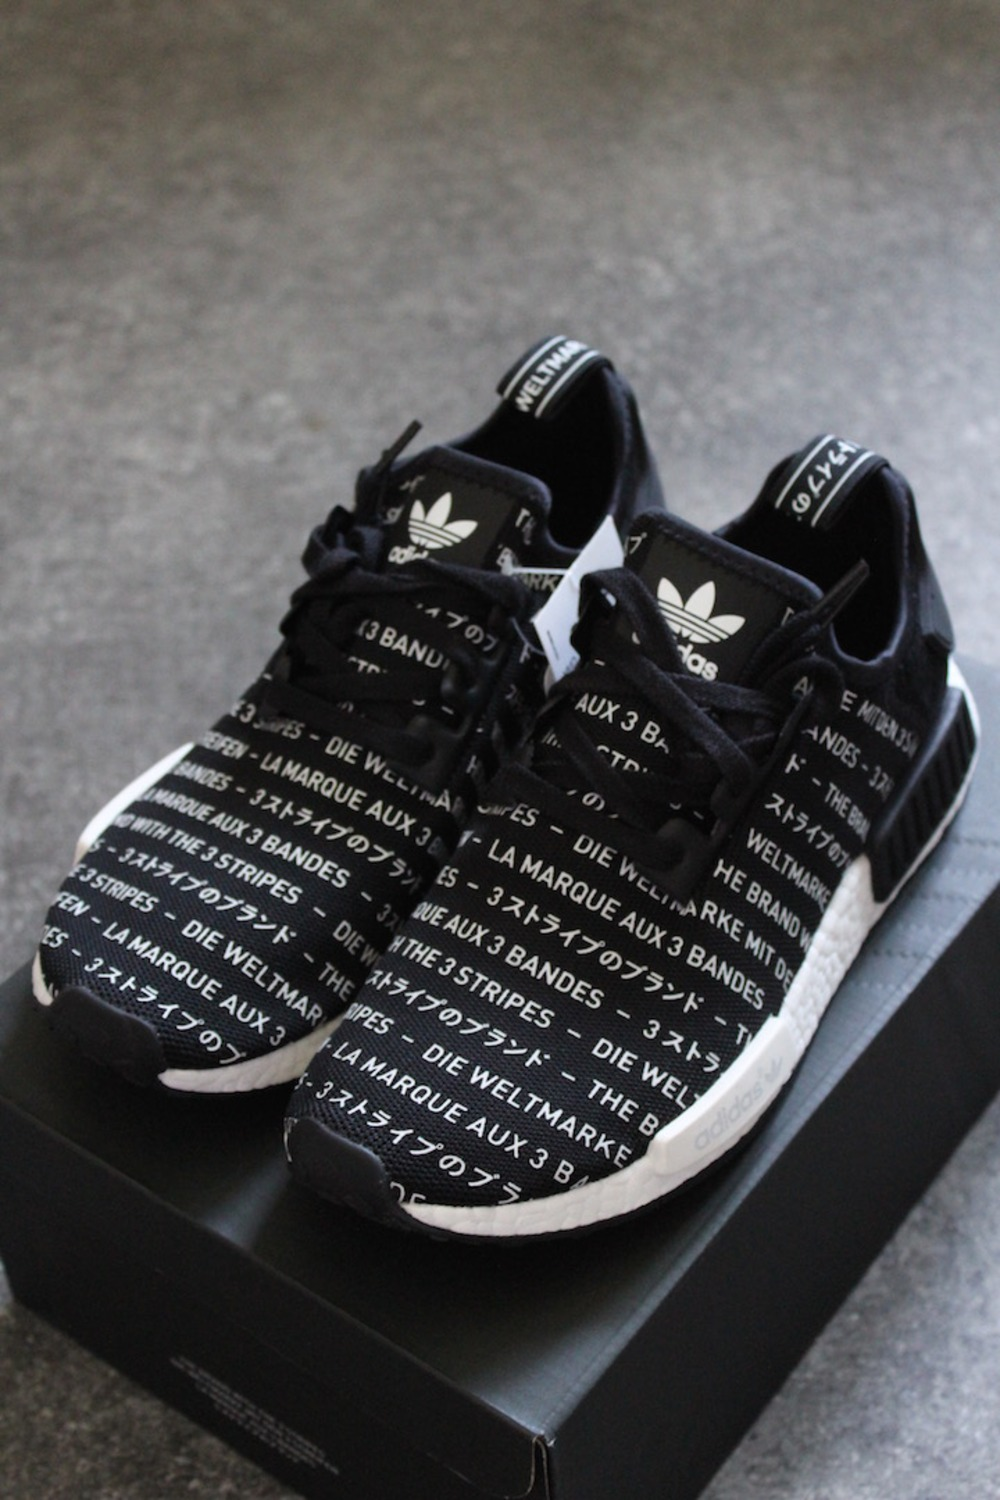 7f0f6a2e5 Cheap Adidas NMD R1 Primeknit Shoes Sale